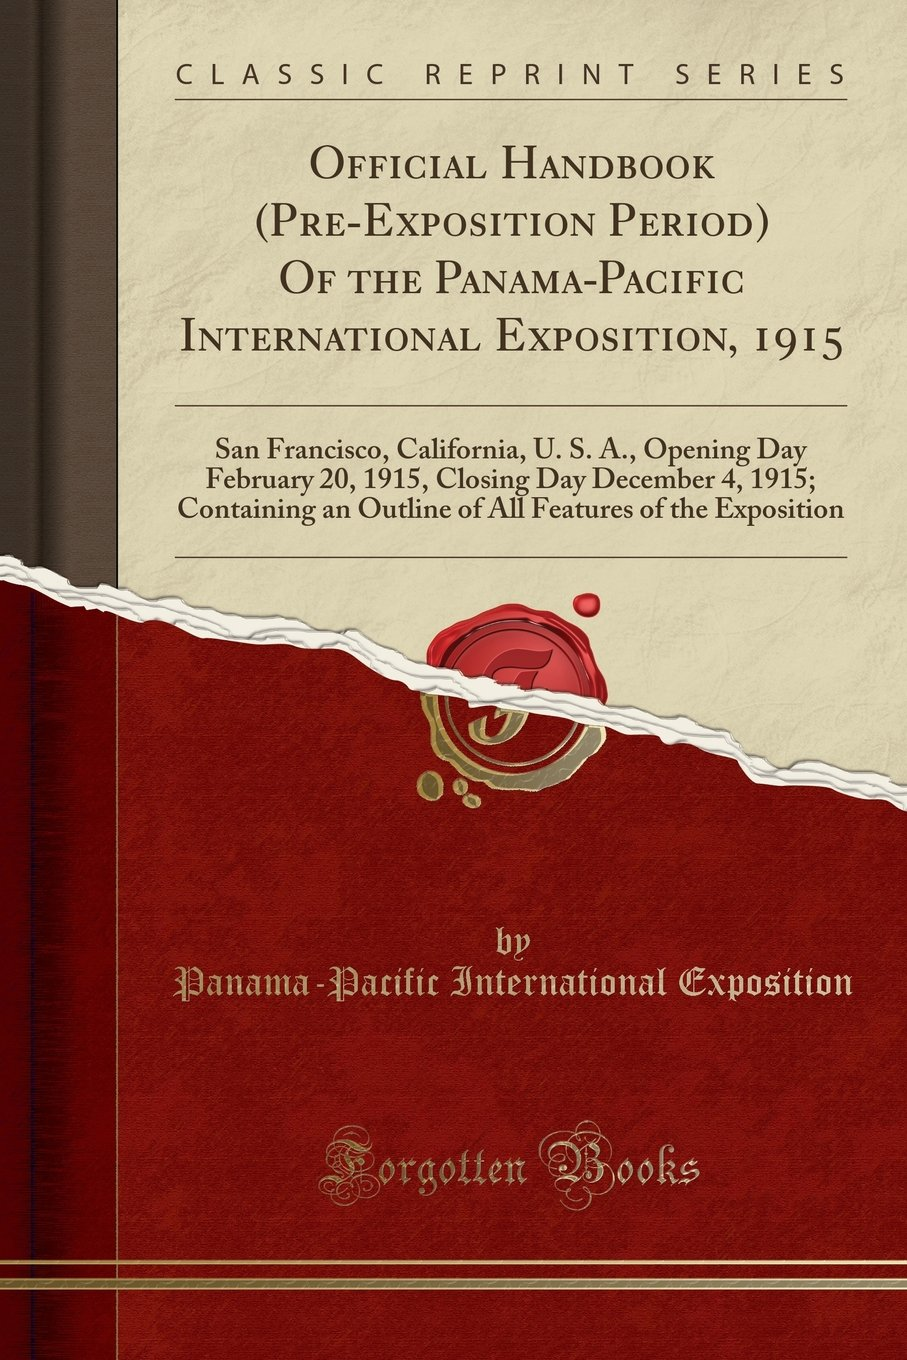 Download Official Handbook (Pre-Exposition Period) Of the Panama-Pacific International Exposition, 1915: San Francisco, California, U. S. A., Opening Day ... an Outline of All Features of the Exposition pdf epub